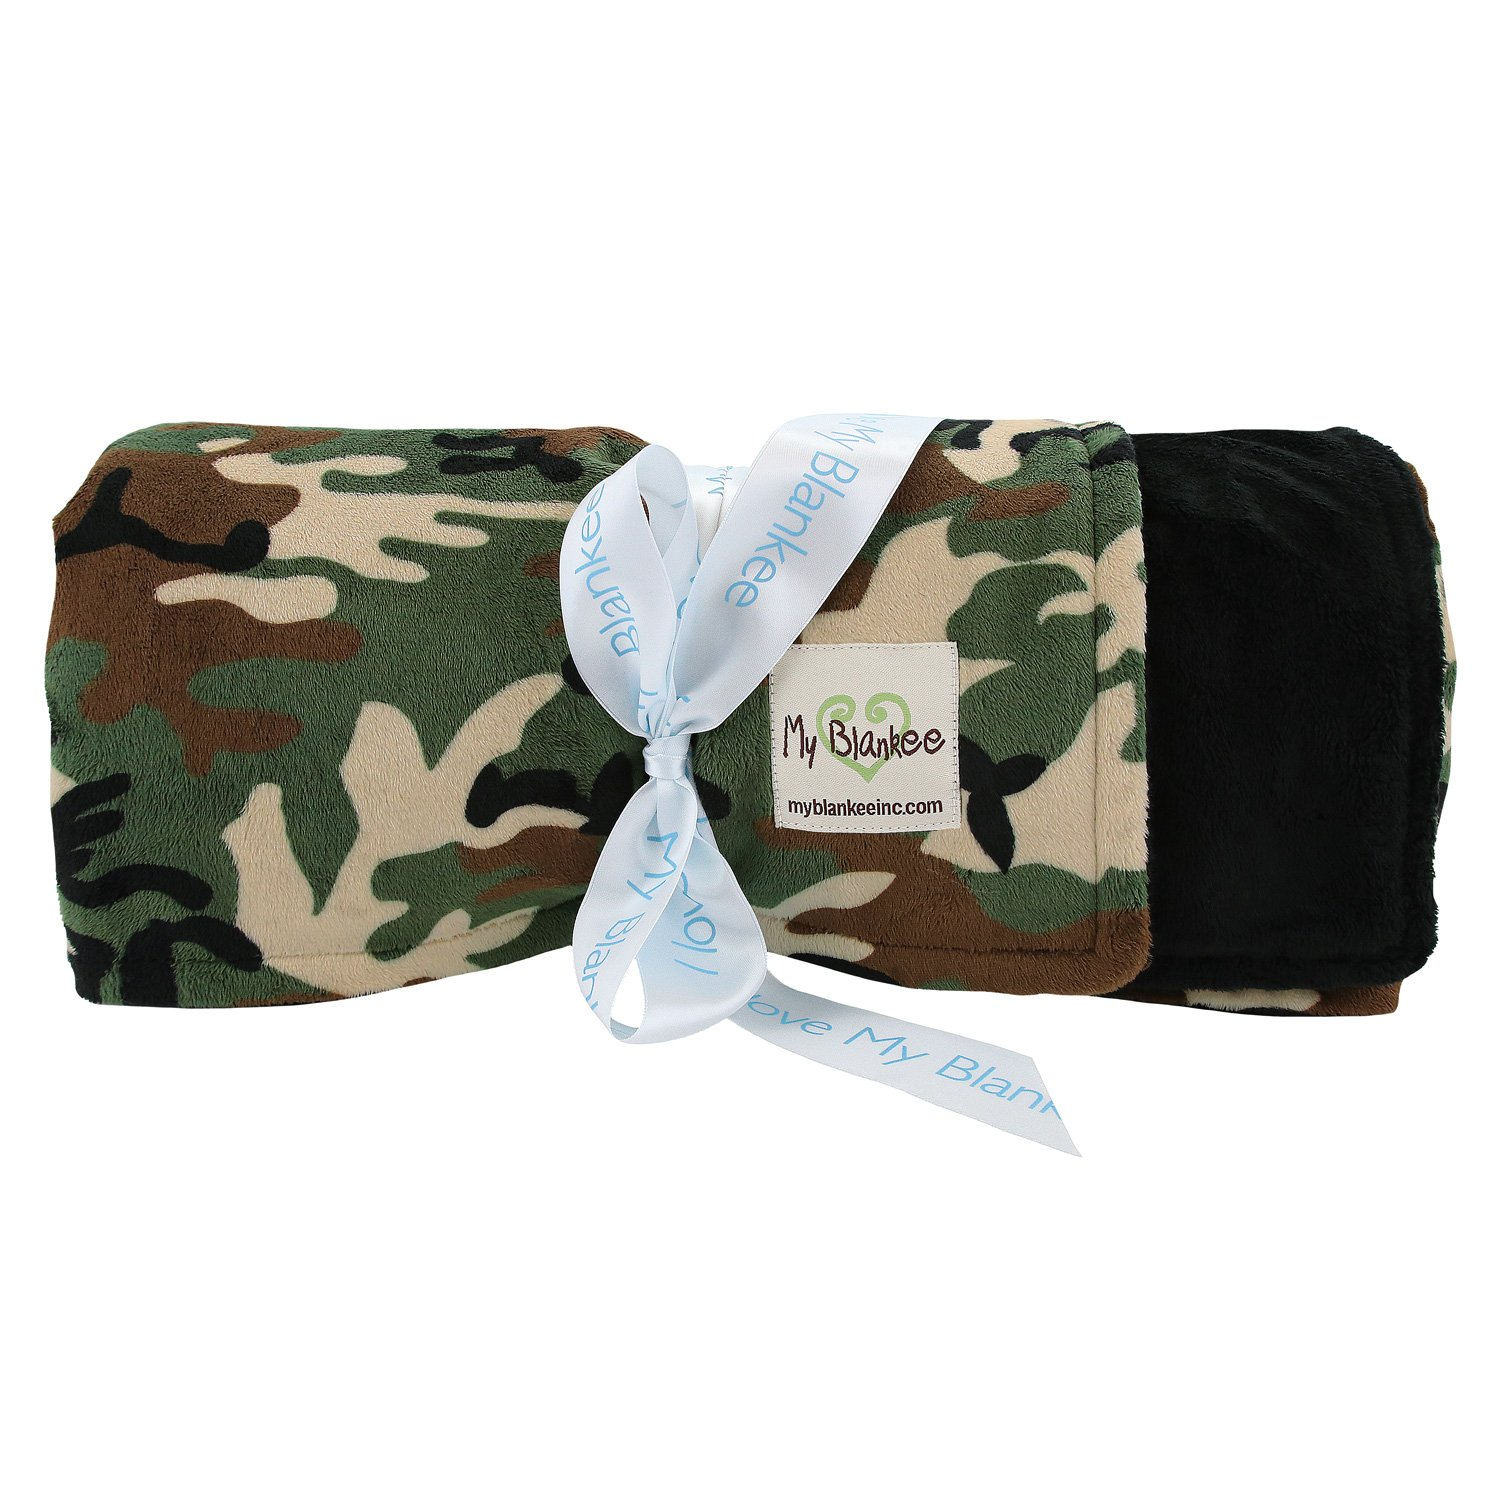 My Blankee Green Camouflage with Minky Solid Back Throw Blanket, Black, 52'' x 60''